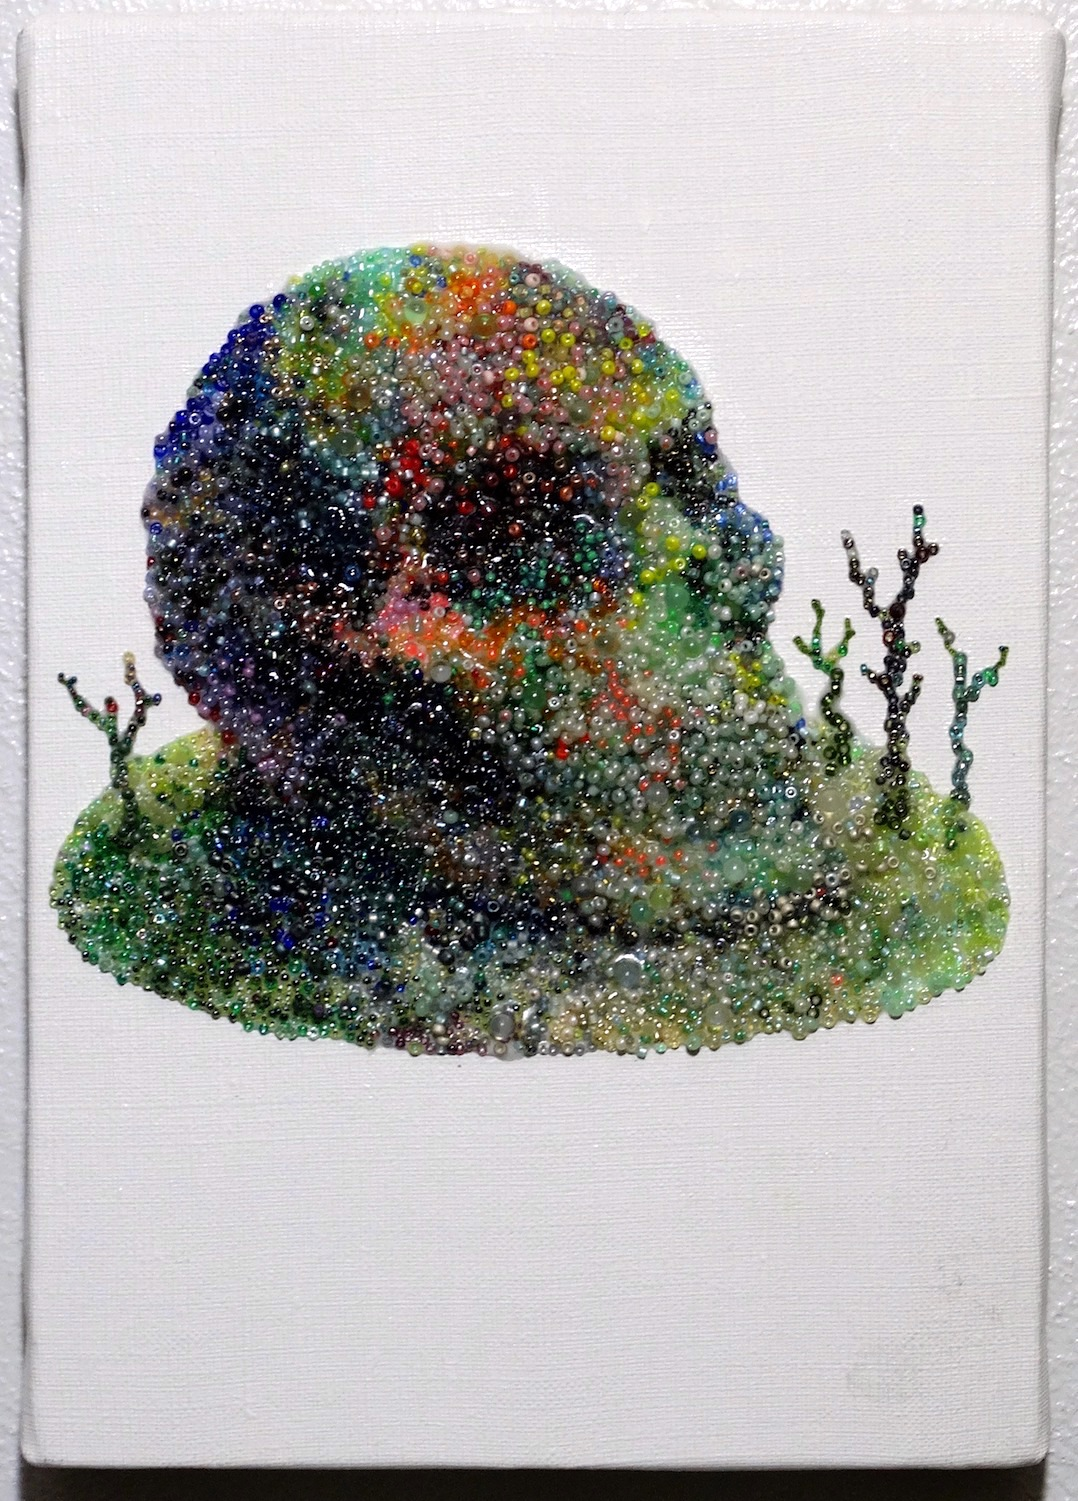 Revival forest(226mm×160mm)